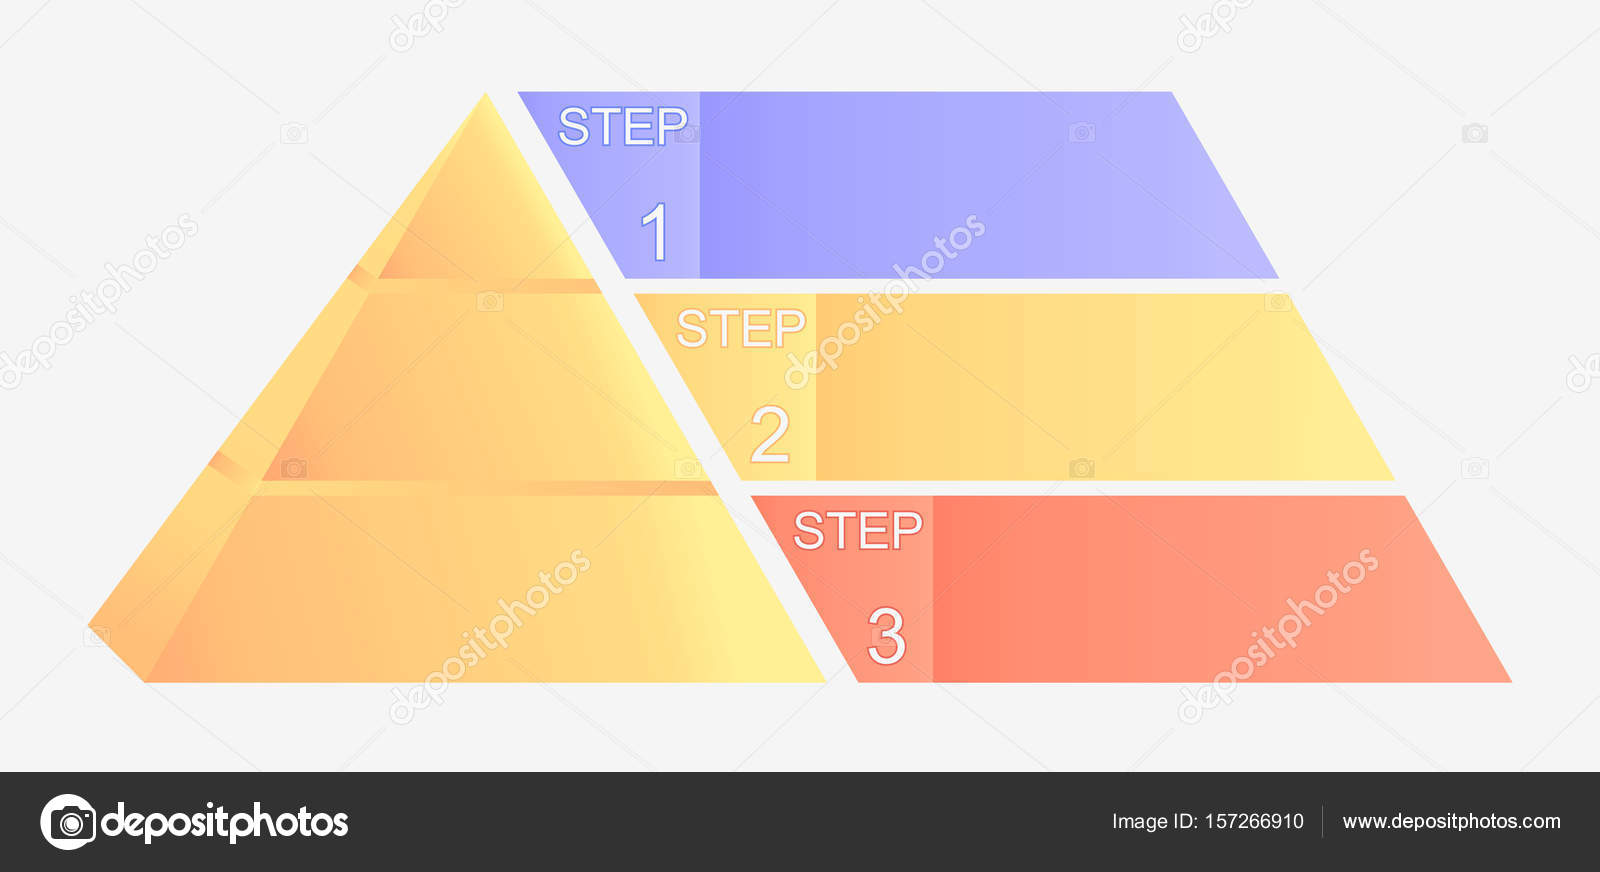 Pyramid Chart With Four Elements Numbers And Text Diagram Template Infographic Illustration